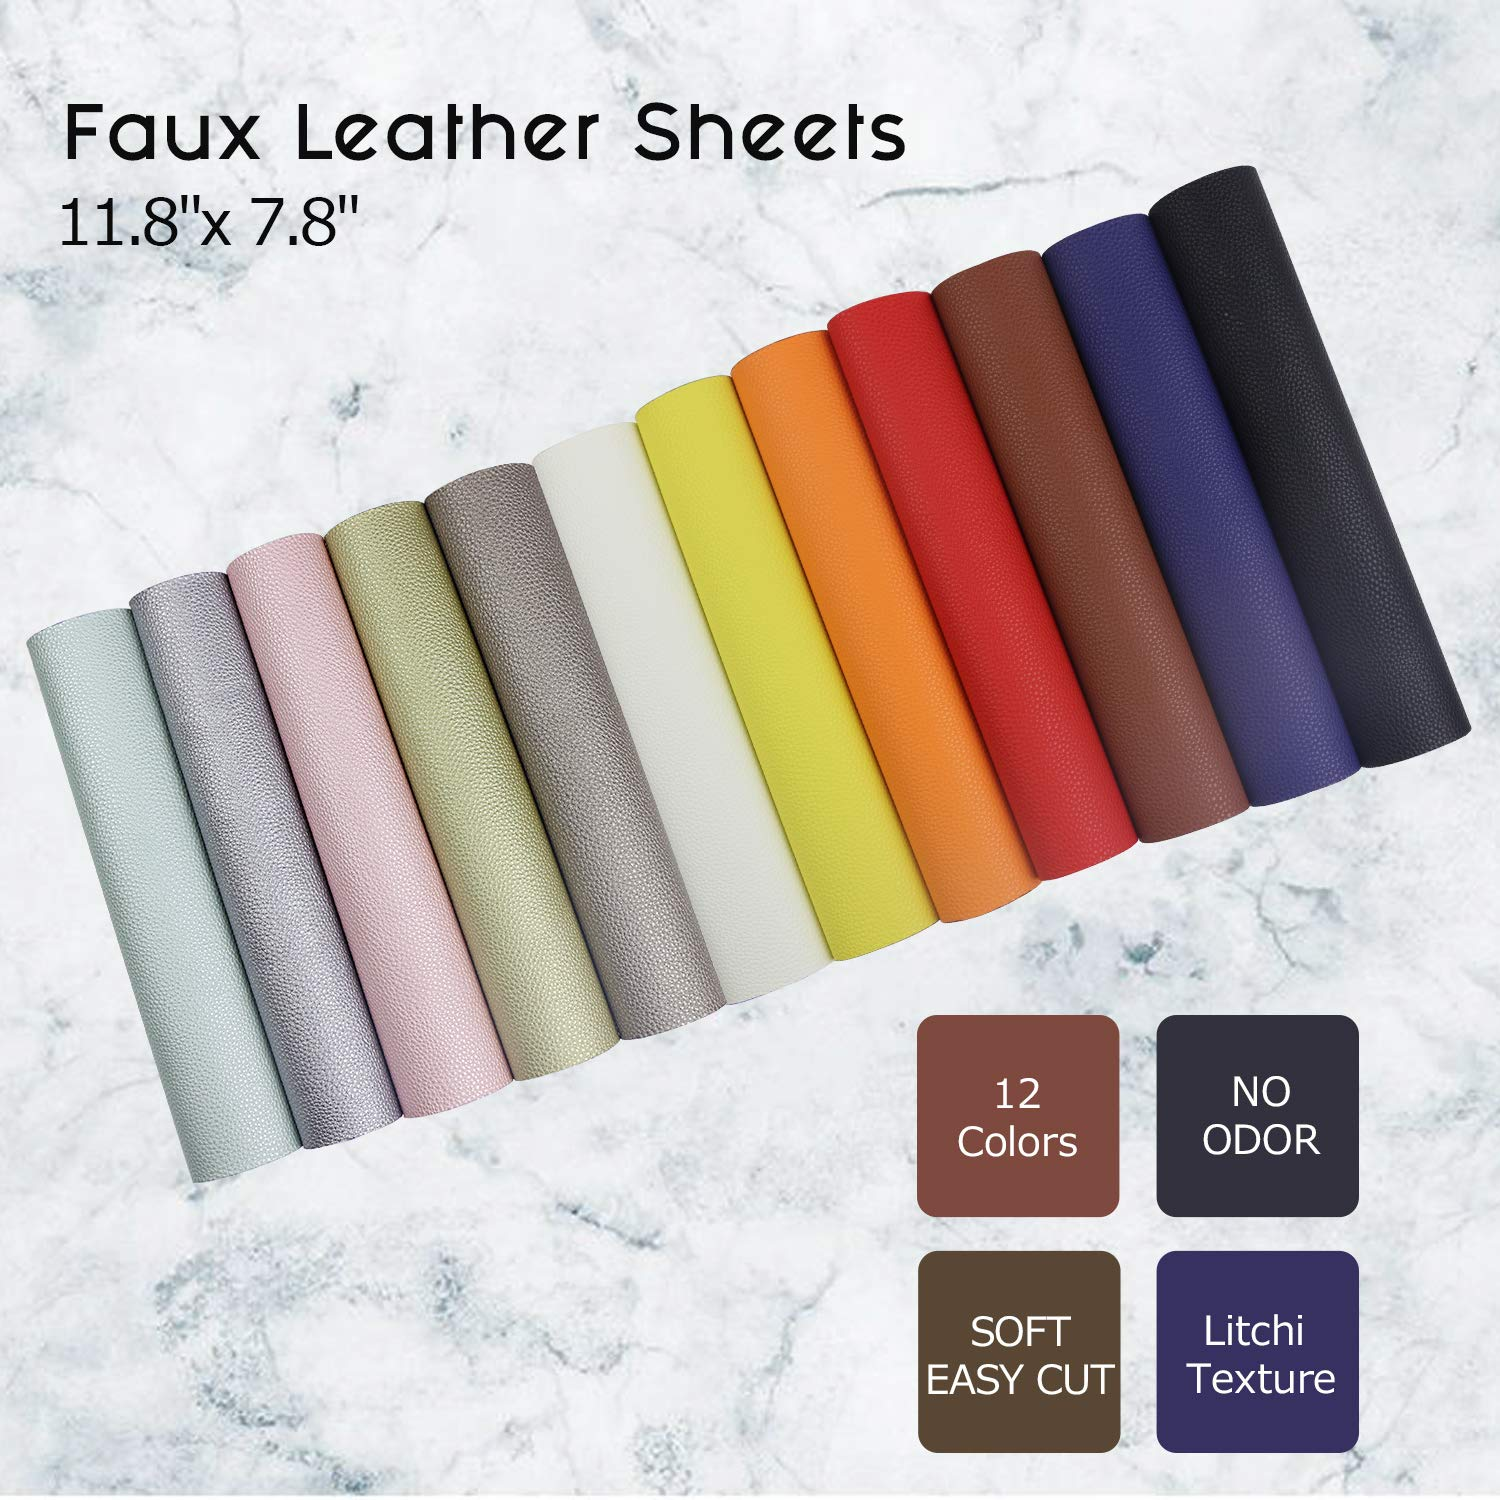 Litchi Faux Leather Sheets, SIMPZIA NO Odor 11.8'' x 7.8'' PU Synthetic Leather Cotton Backed, 1.2mm Easy Cut Fabric Leather with 12PCS Pearlized and Solid Colors for Earrings, DIY Craft Projects by SIMPZIA (Image #4)